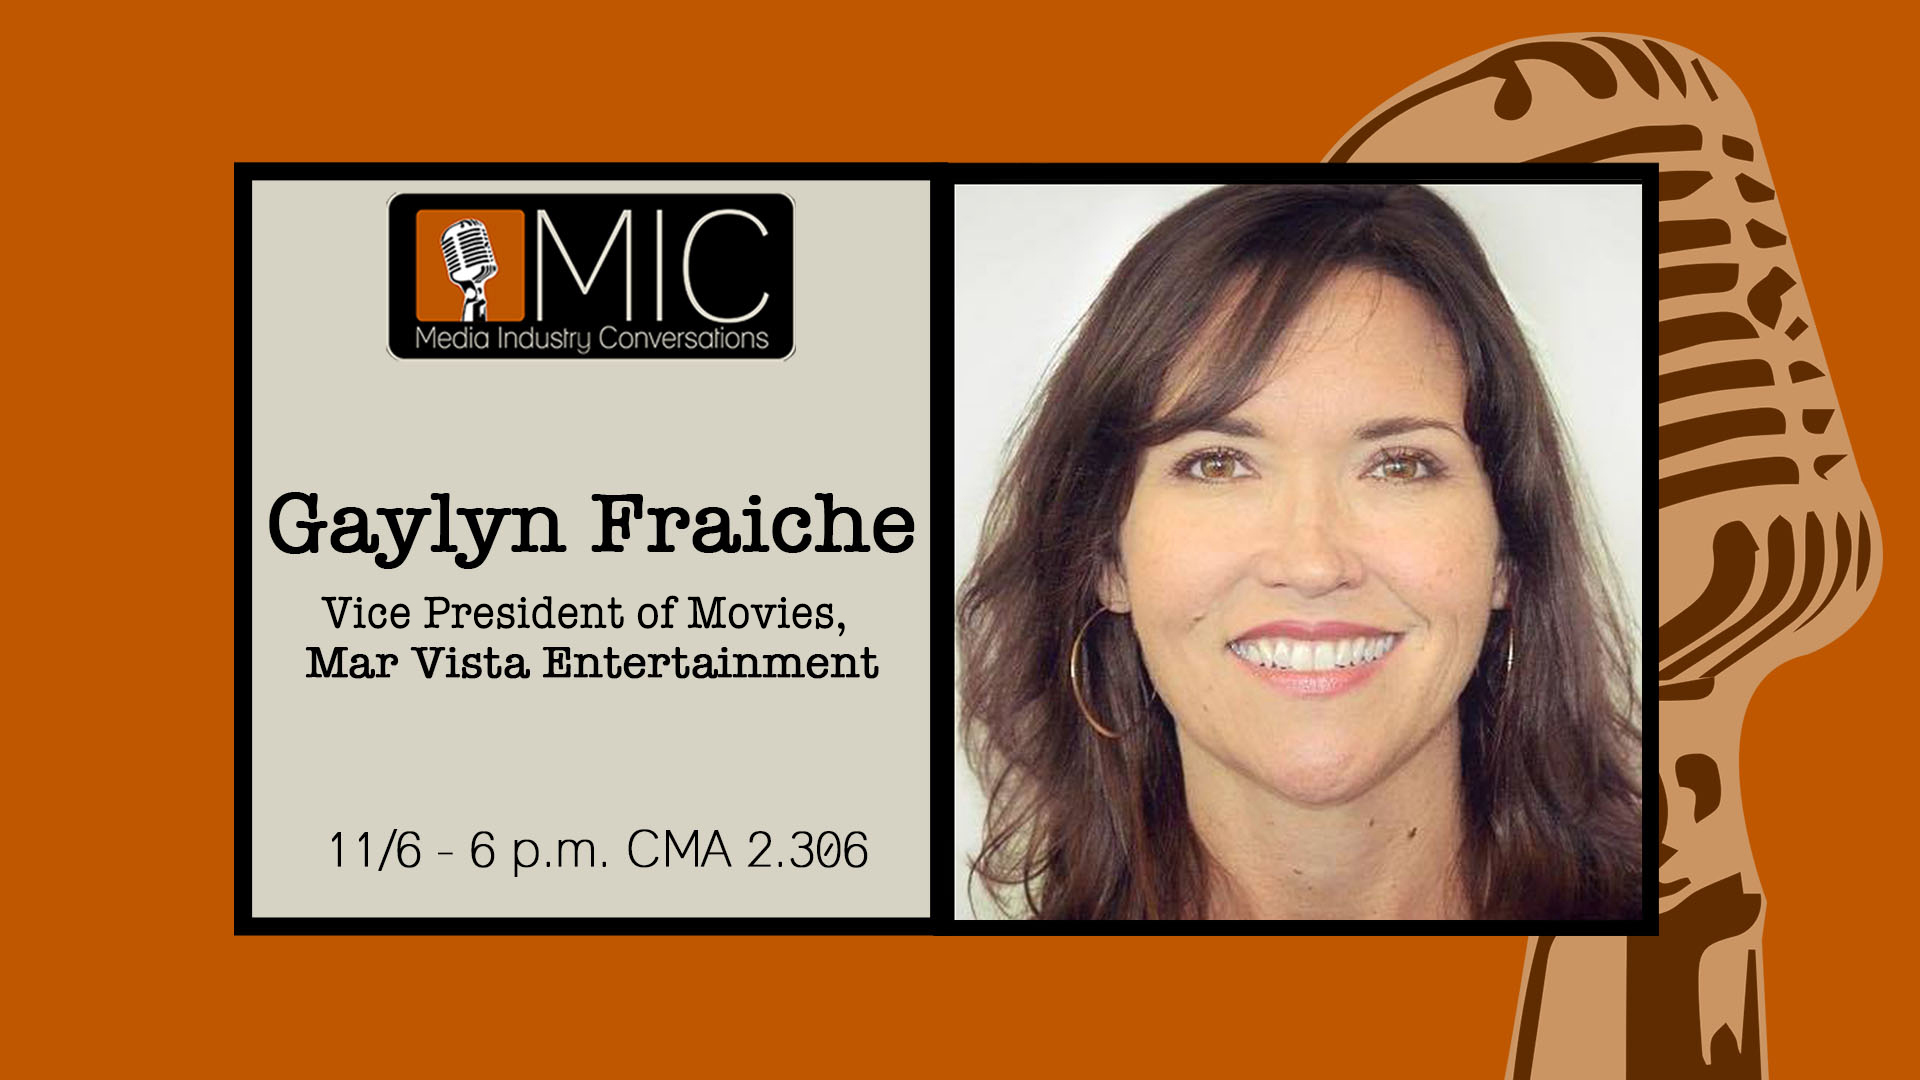 Gaylyn Fraiche Media Industry Conversation Nov 6